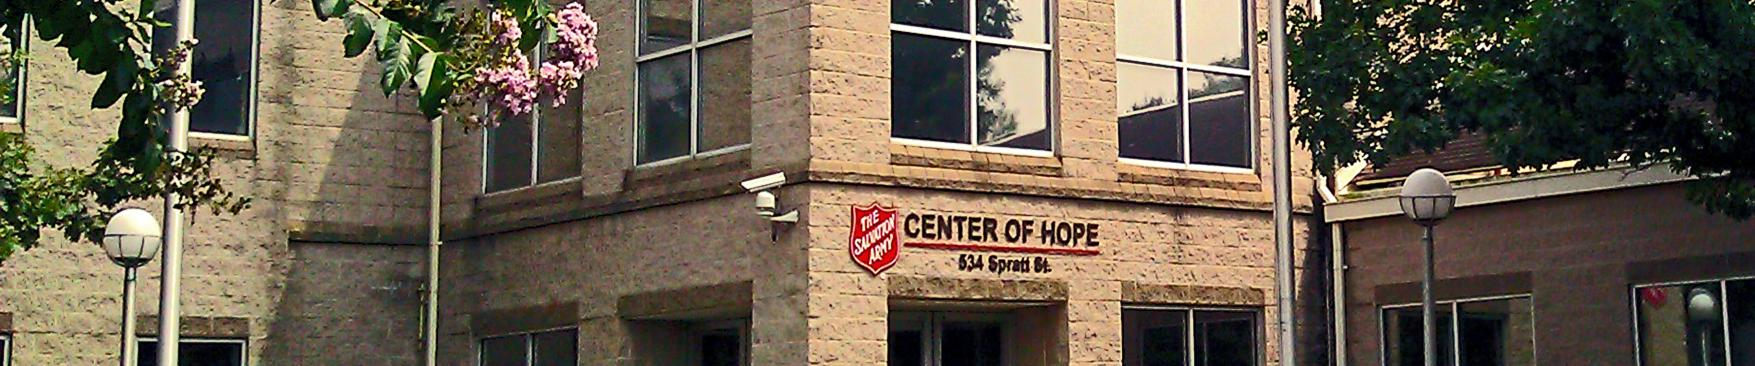 The Salvation Army Center of Hope Shelter